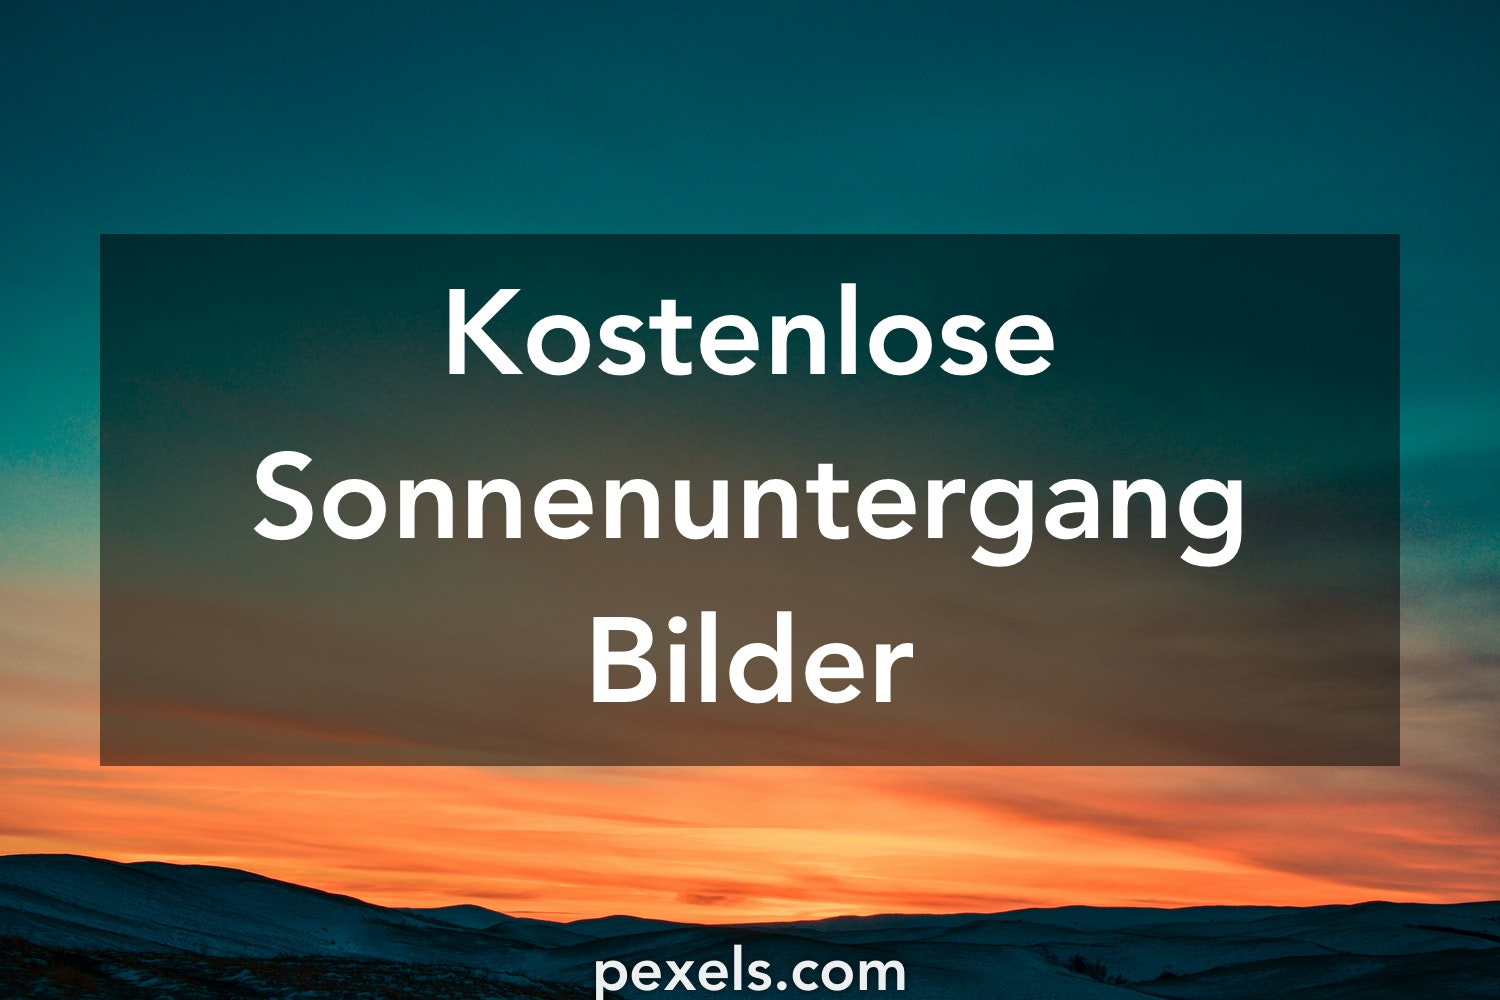 sonnenuntergang bilder pexels kostenlose stock fotos. Black Bedroom Furniture Sets. Home Design Ideas